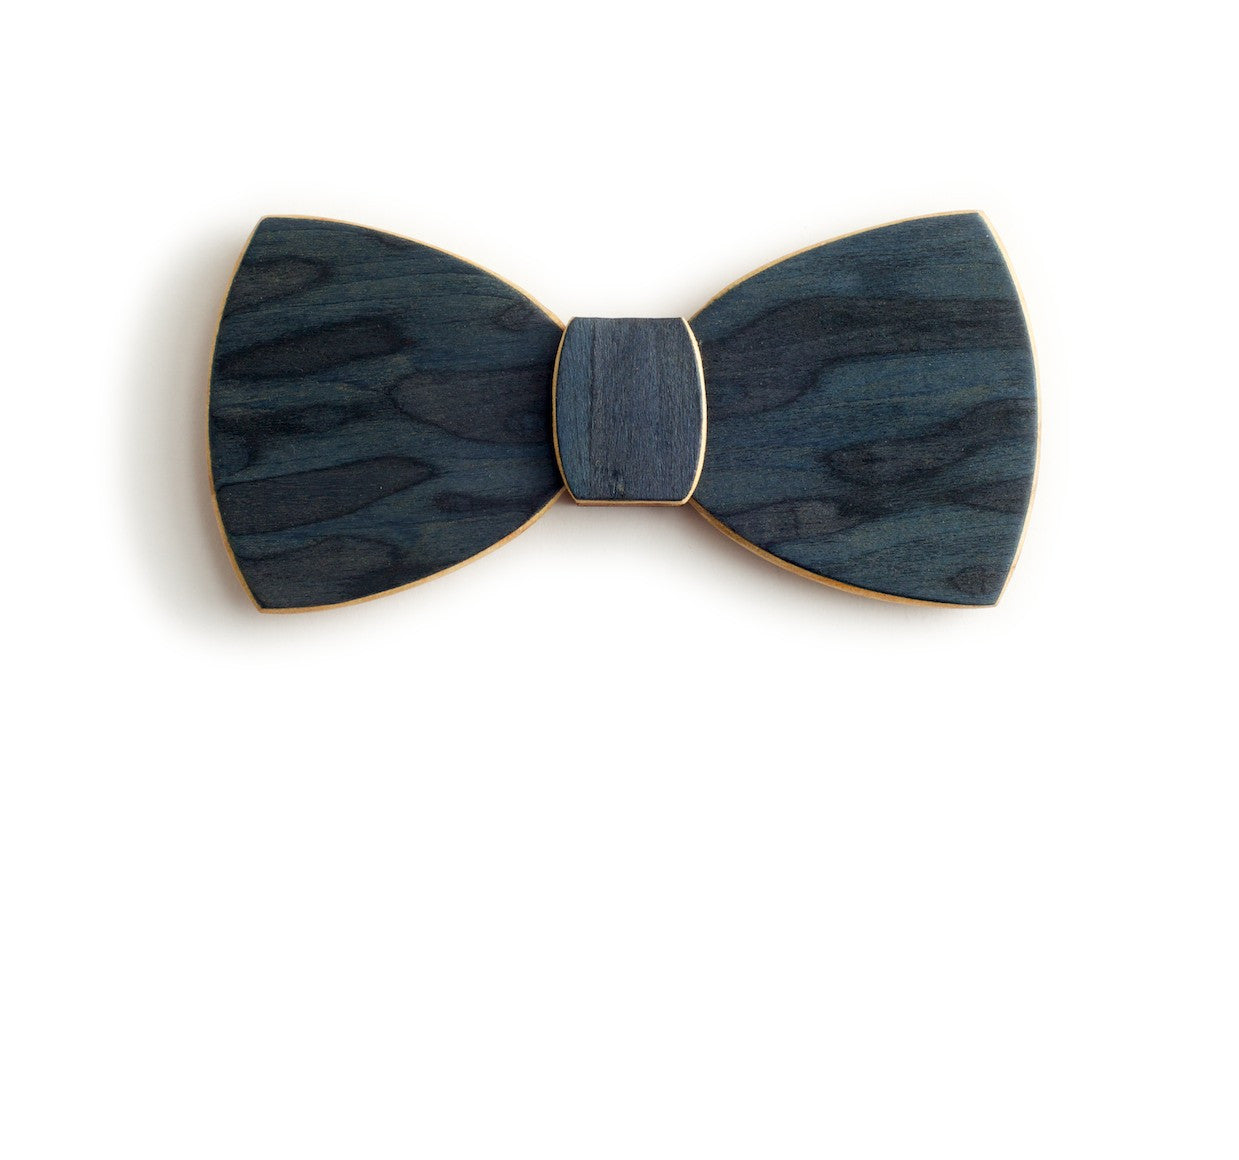 Butterfly Wood Bow Tie - Deep sea